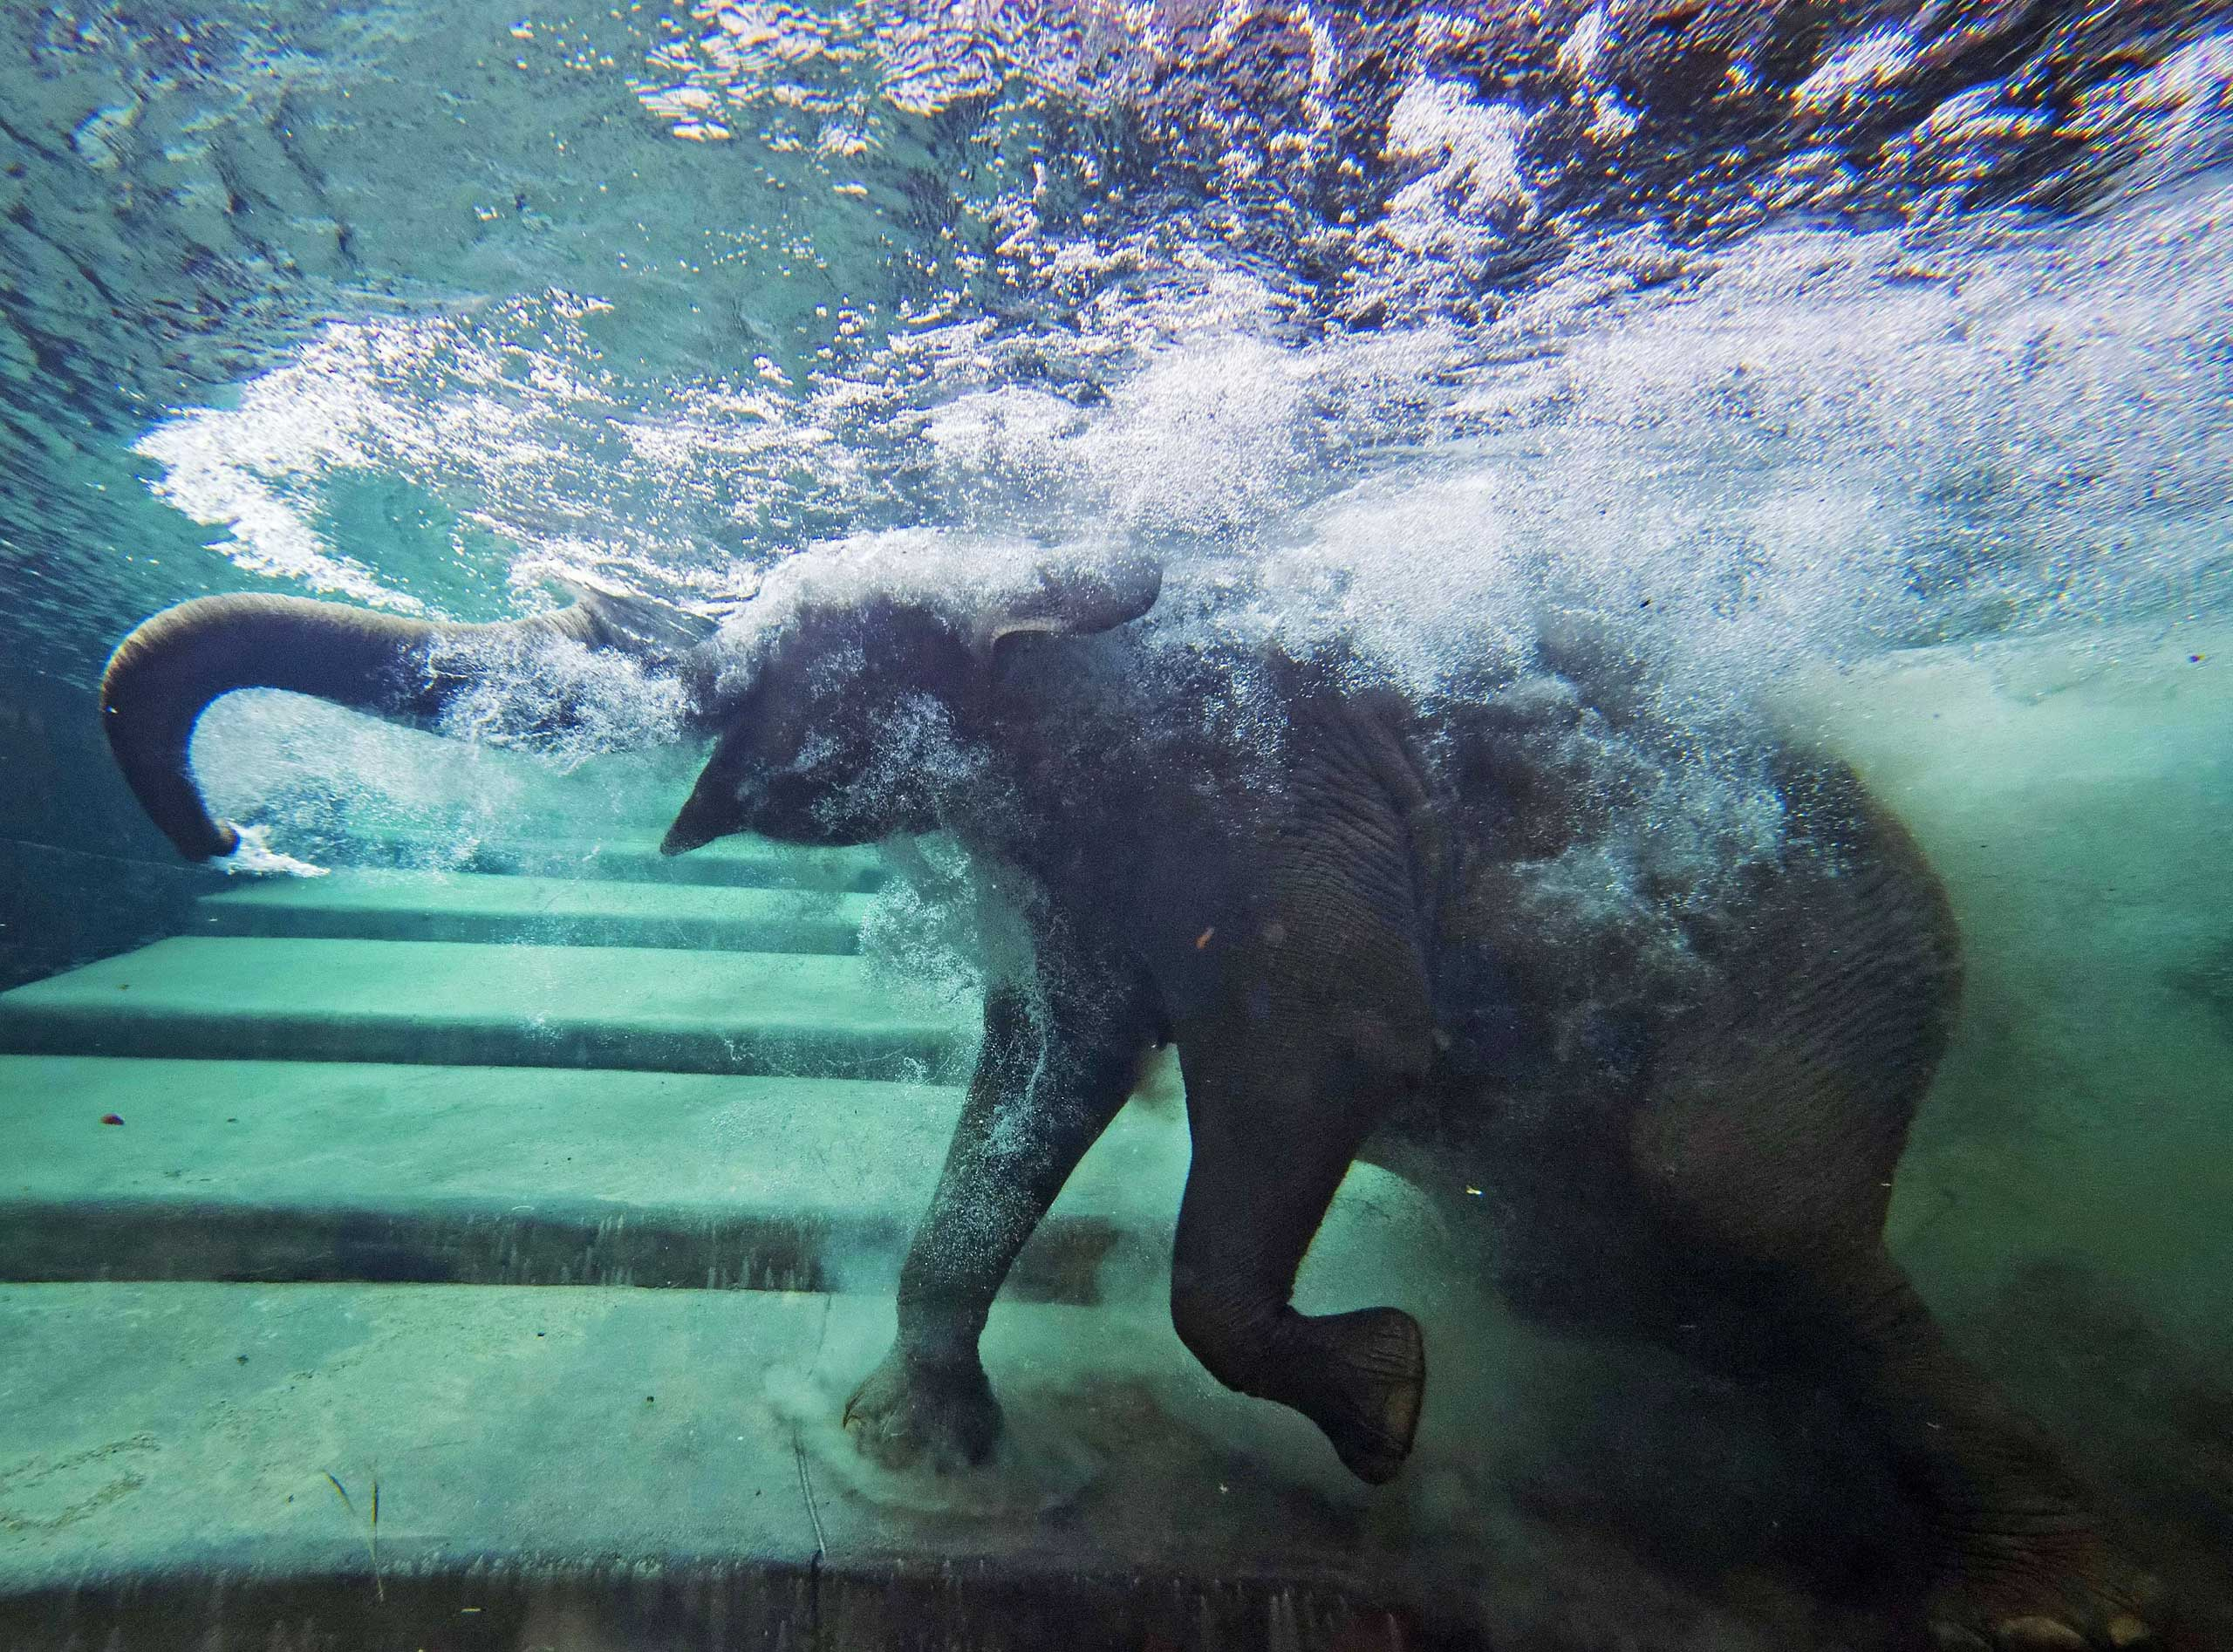 An elephant immerses behind a window in the elephants' indoor pool at the Zoo in Leipzig, Germany, Aug. 5, 2014.